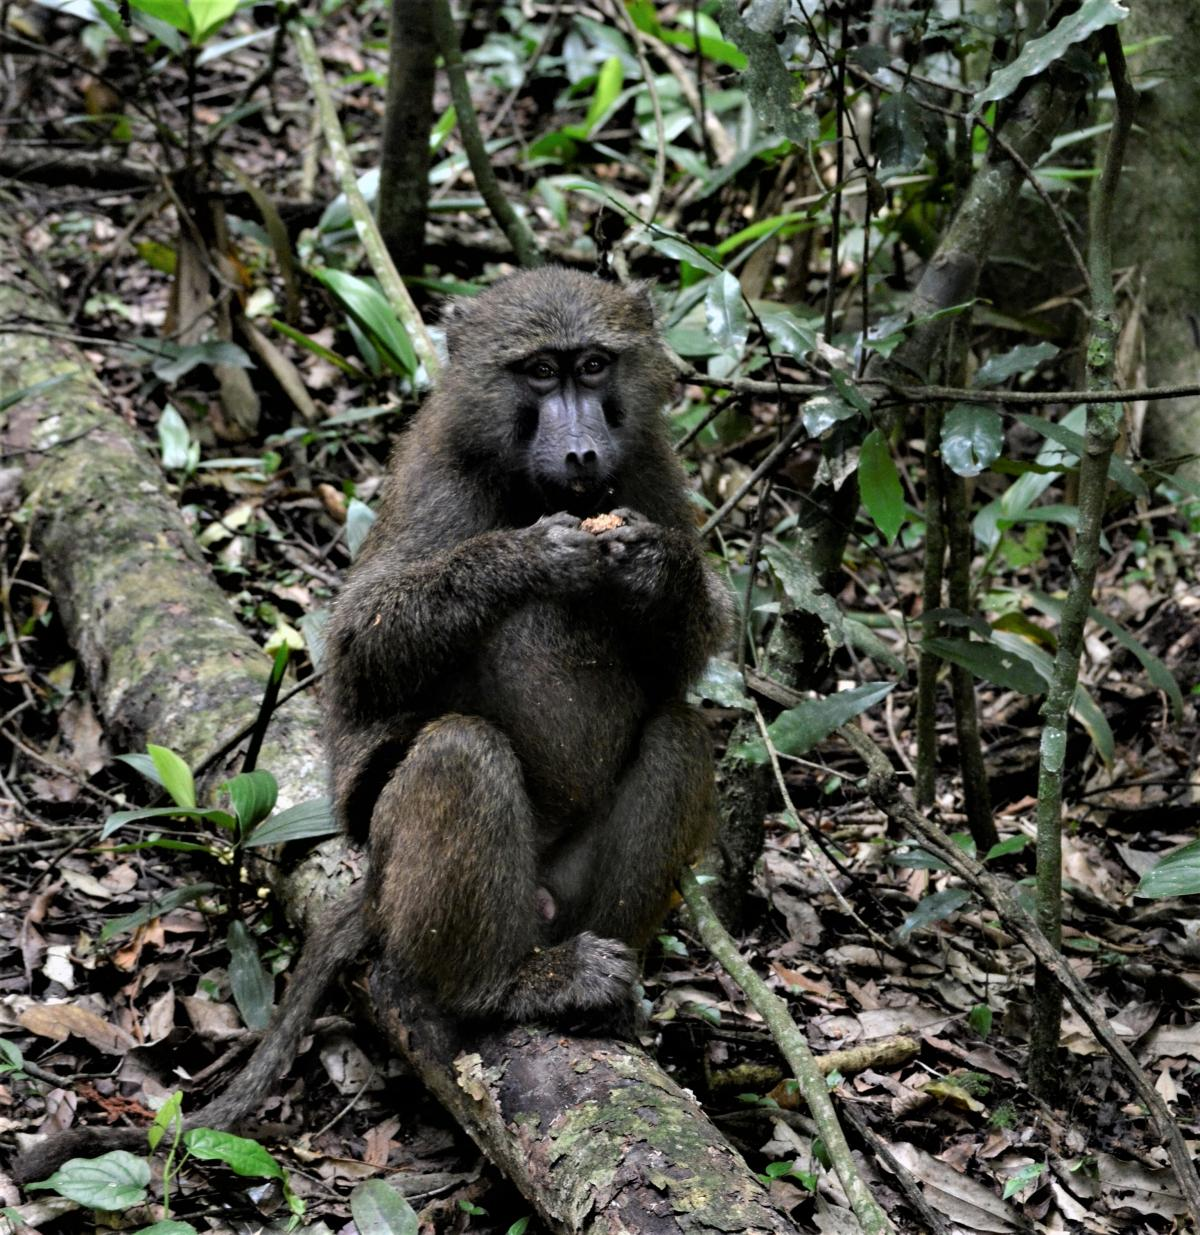 Primates like this baboon may have evolved larger, more complex brains over generations of seeking out fruit rather than sticking to low-calorie leaves.